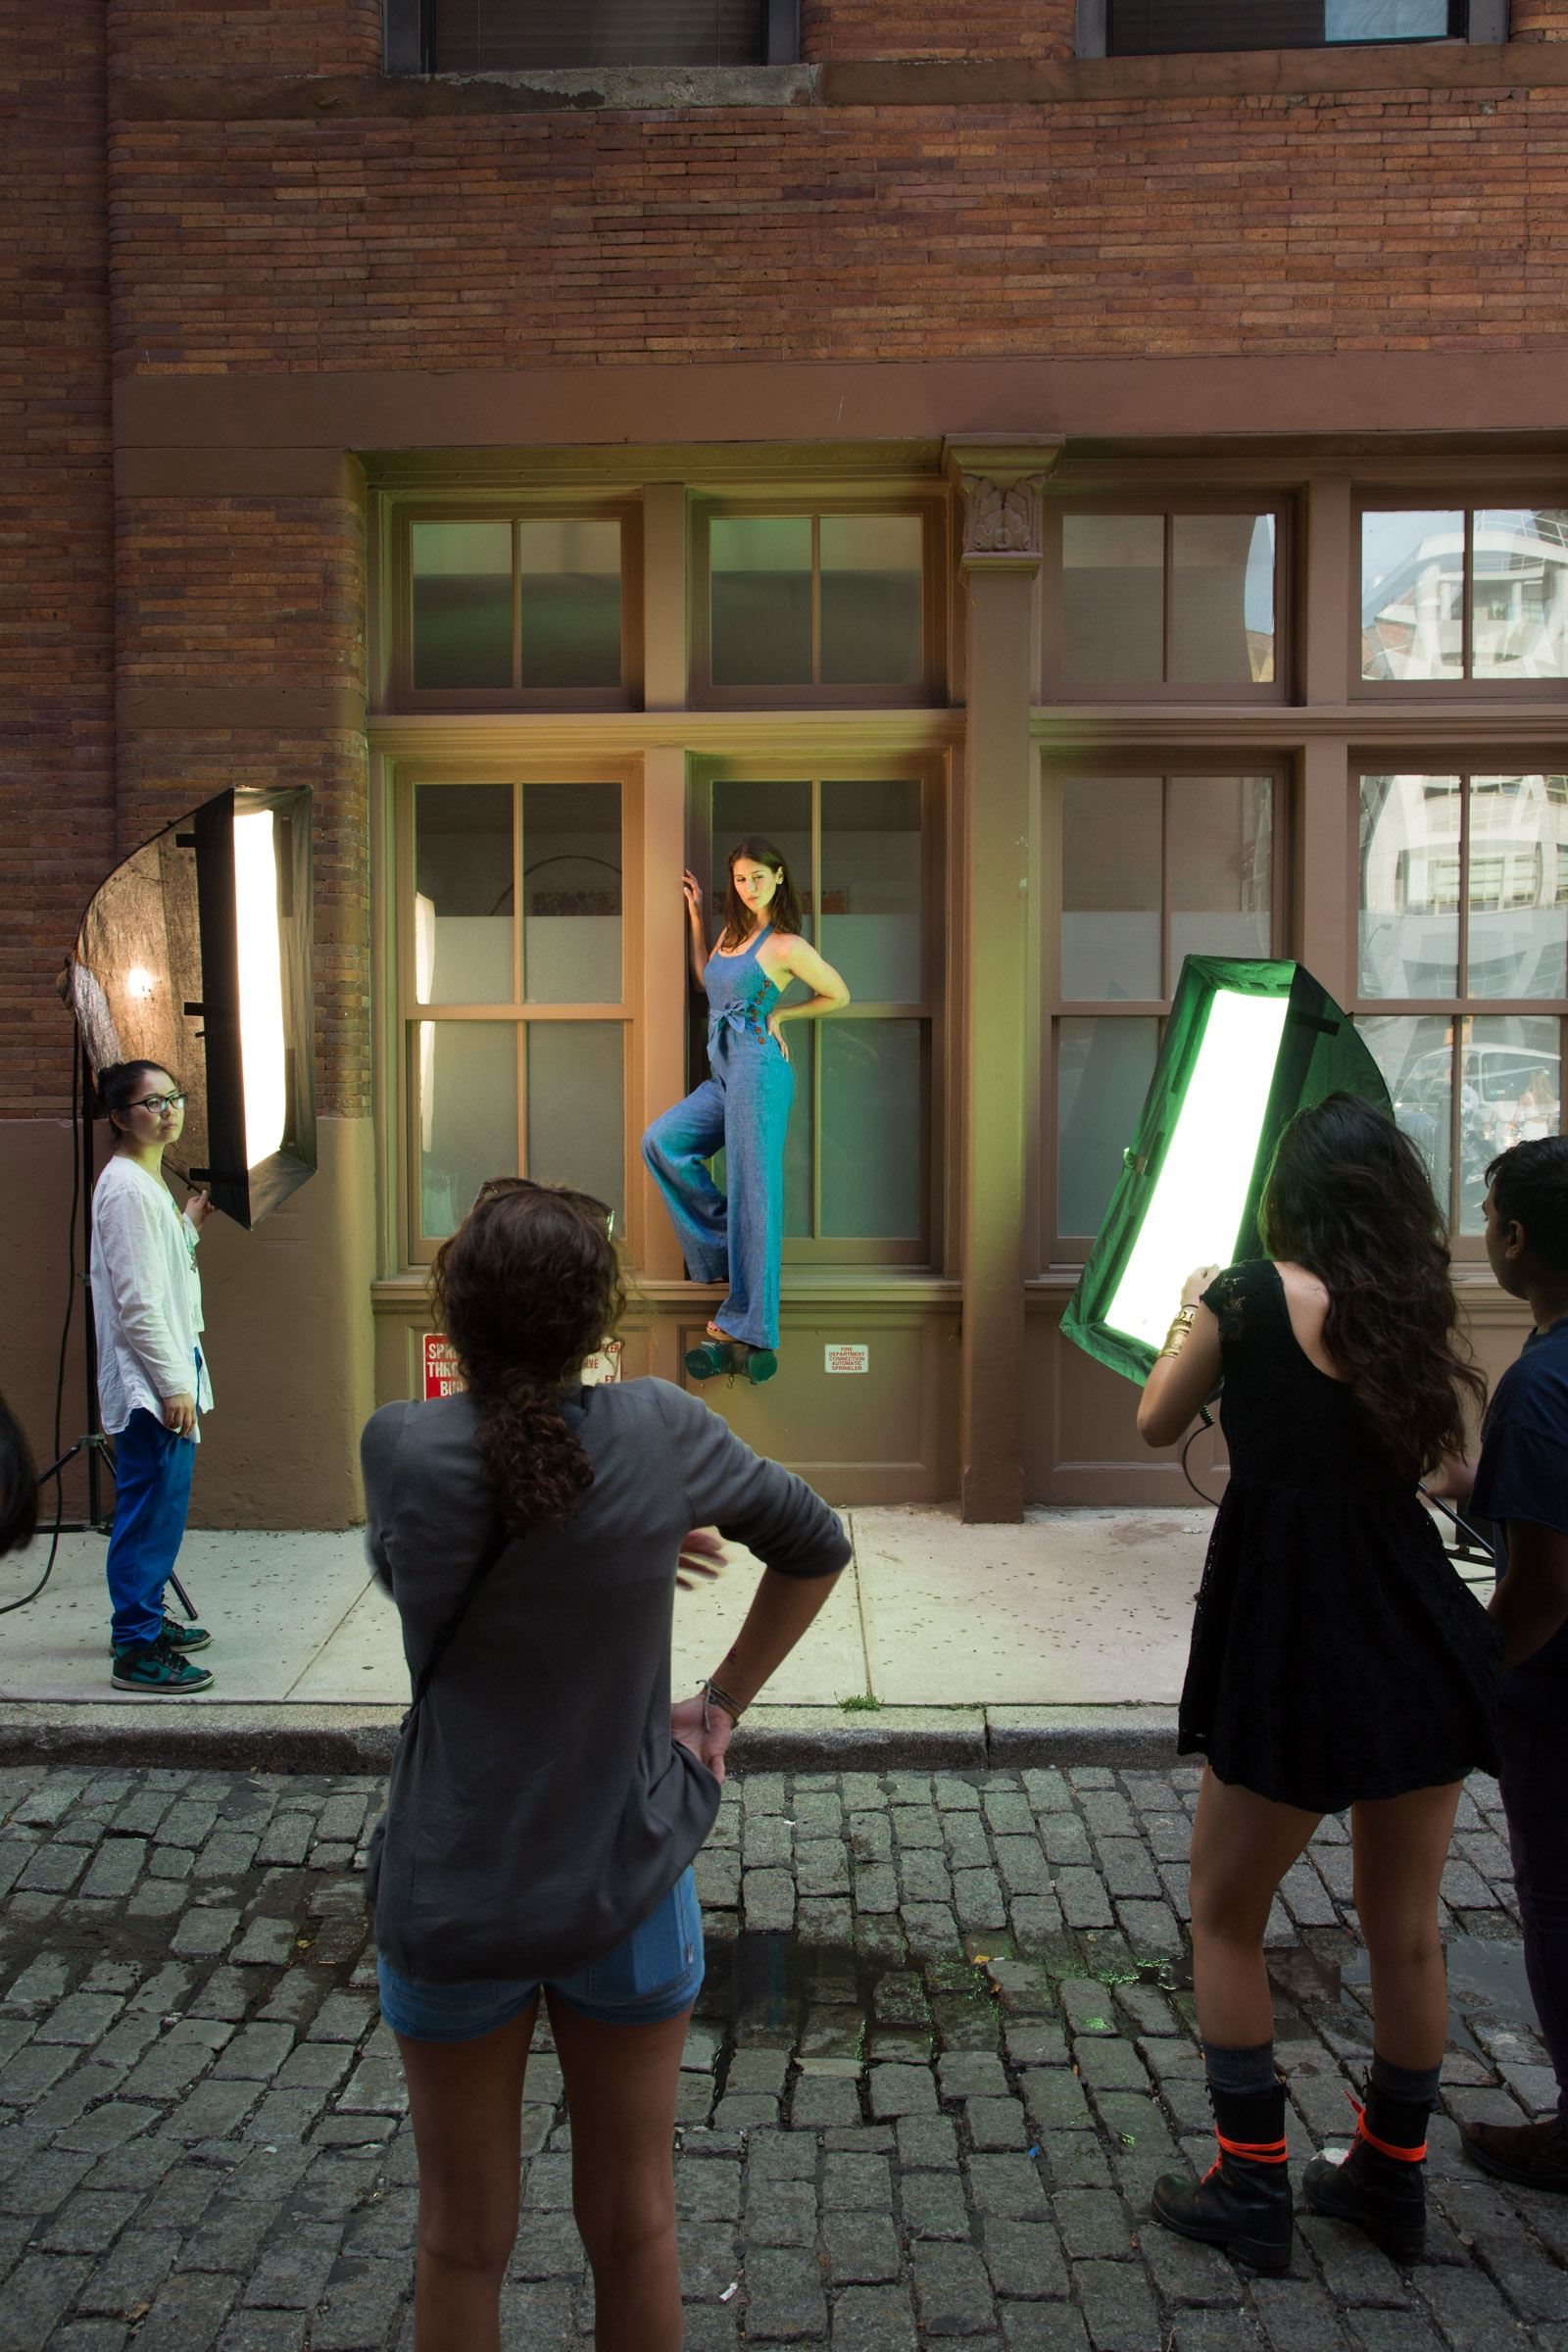 Photo shoot on the street with students holding lights on a model standing on a pipe.